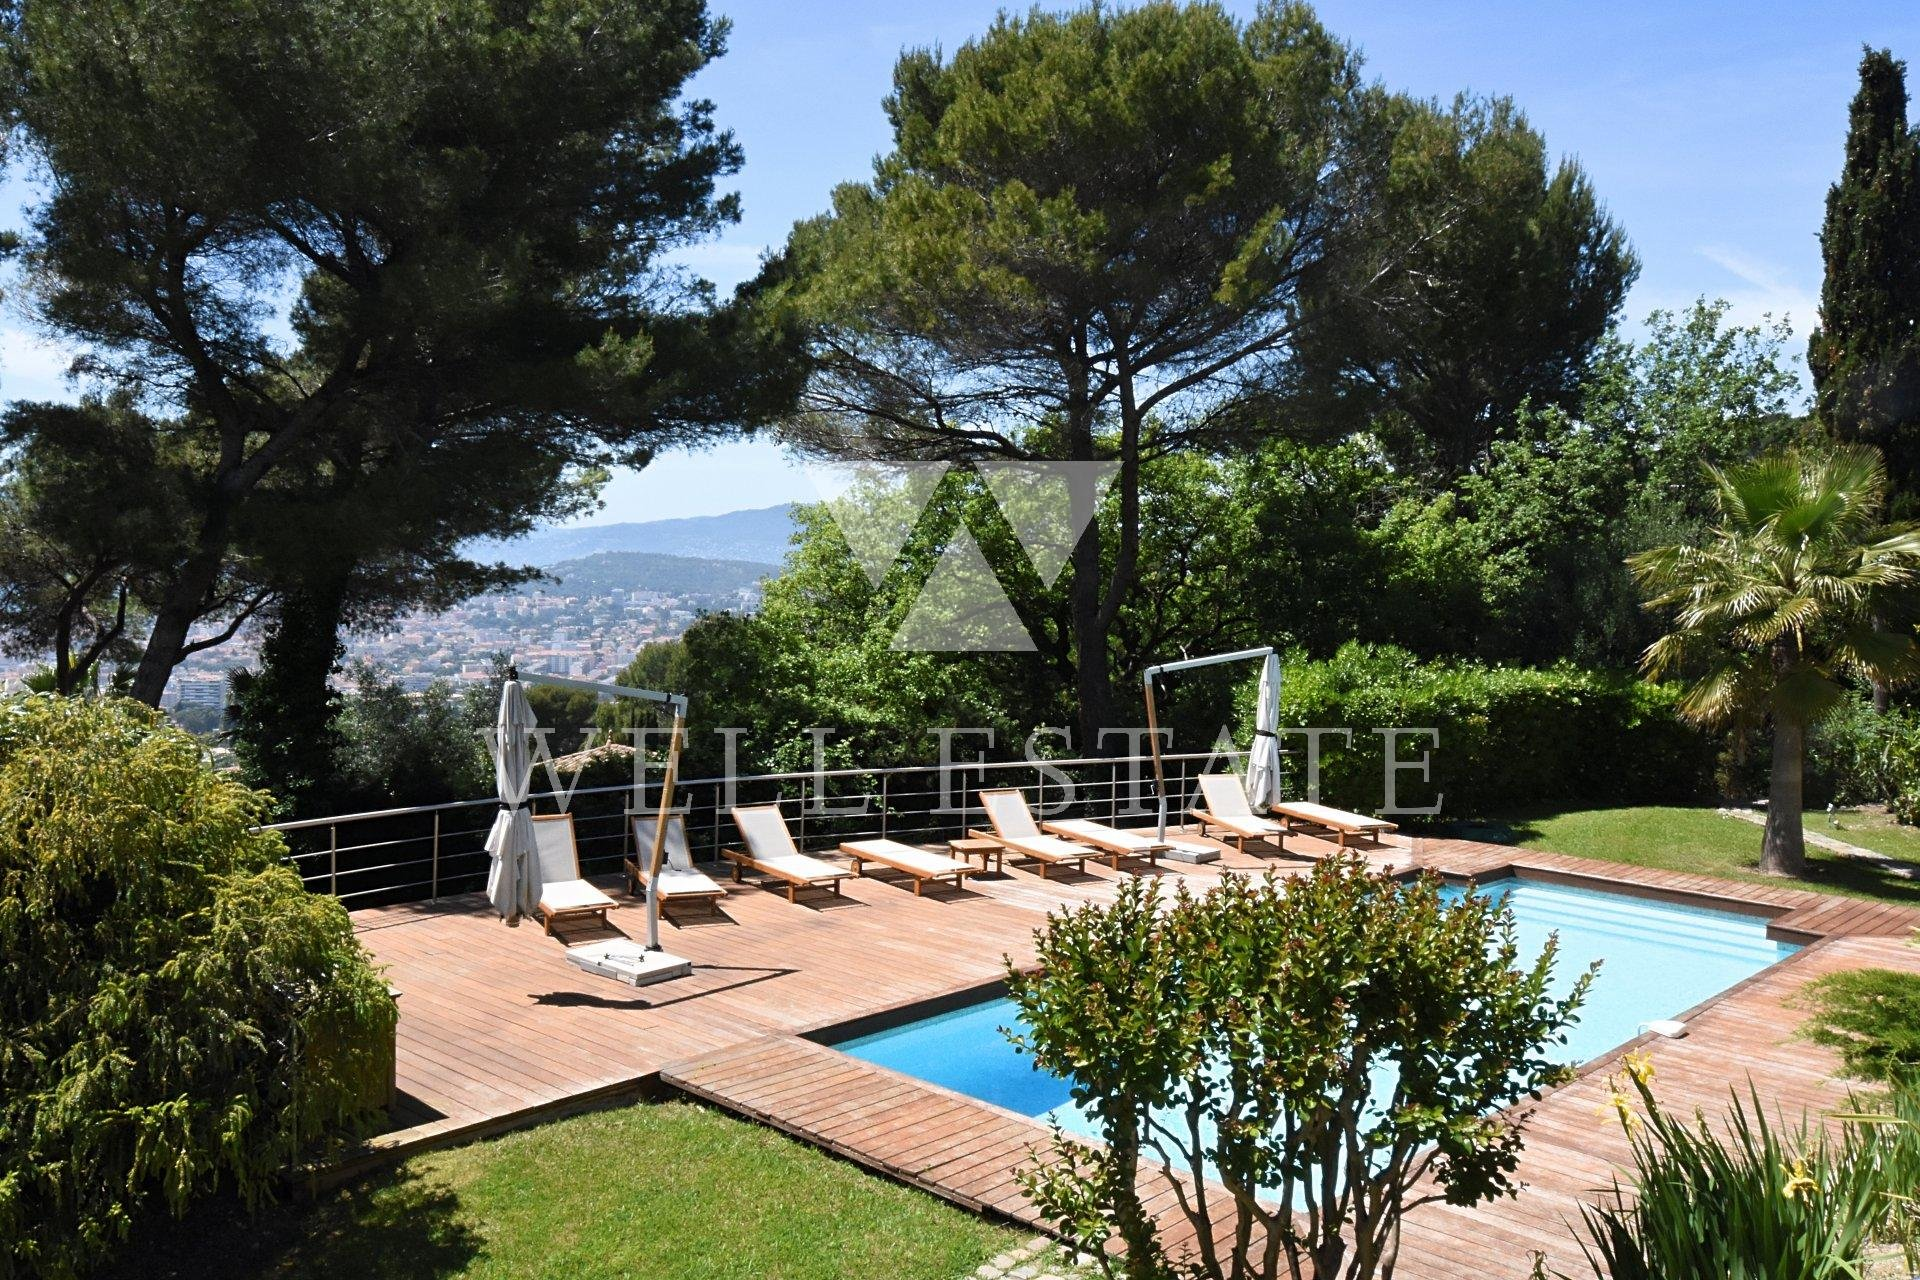 SUPER CANNES VILLA 270M2 8 ROOMS HEATED SWIMMING POOL SEA VIEW